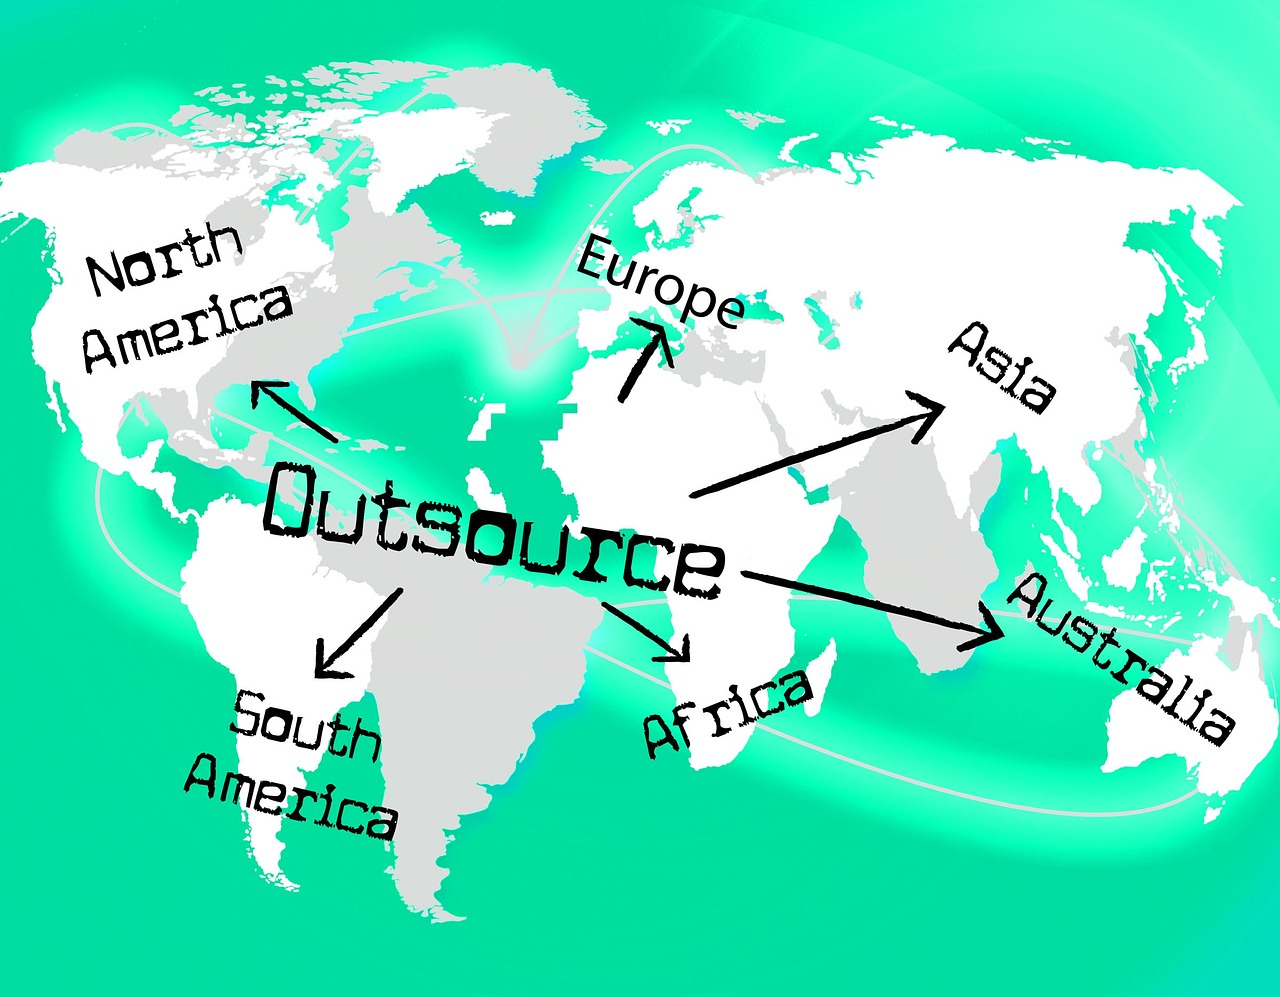 clue4u.com outsourcing